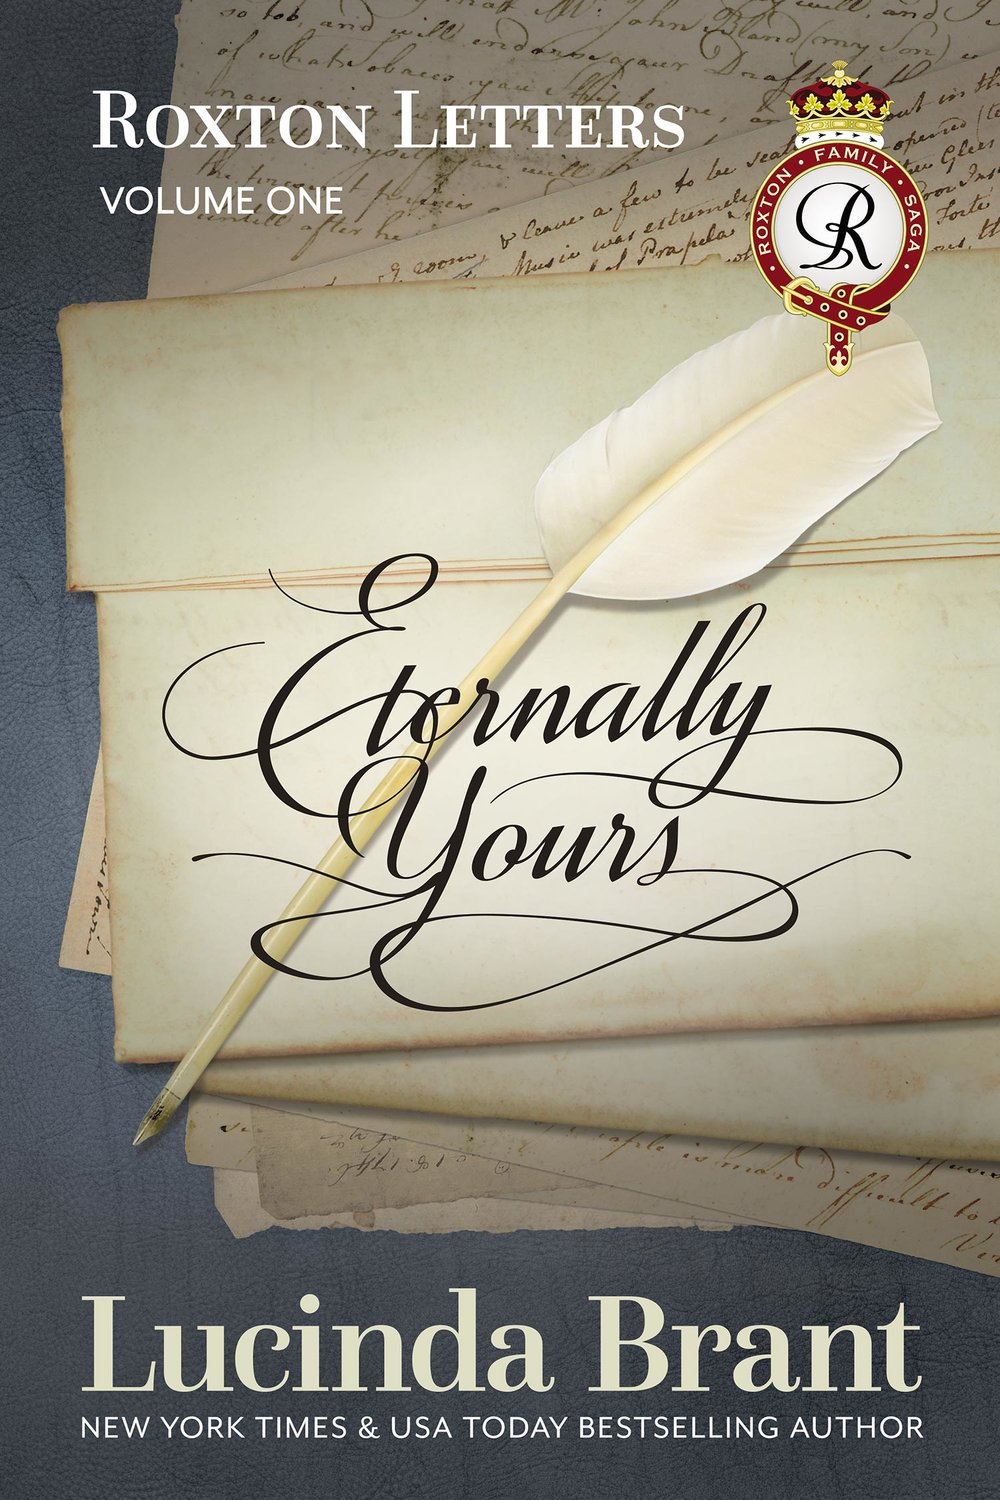 Eternally Yours: Roxton Letters Volume One by Lucinda Brant